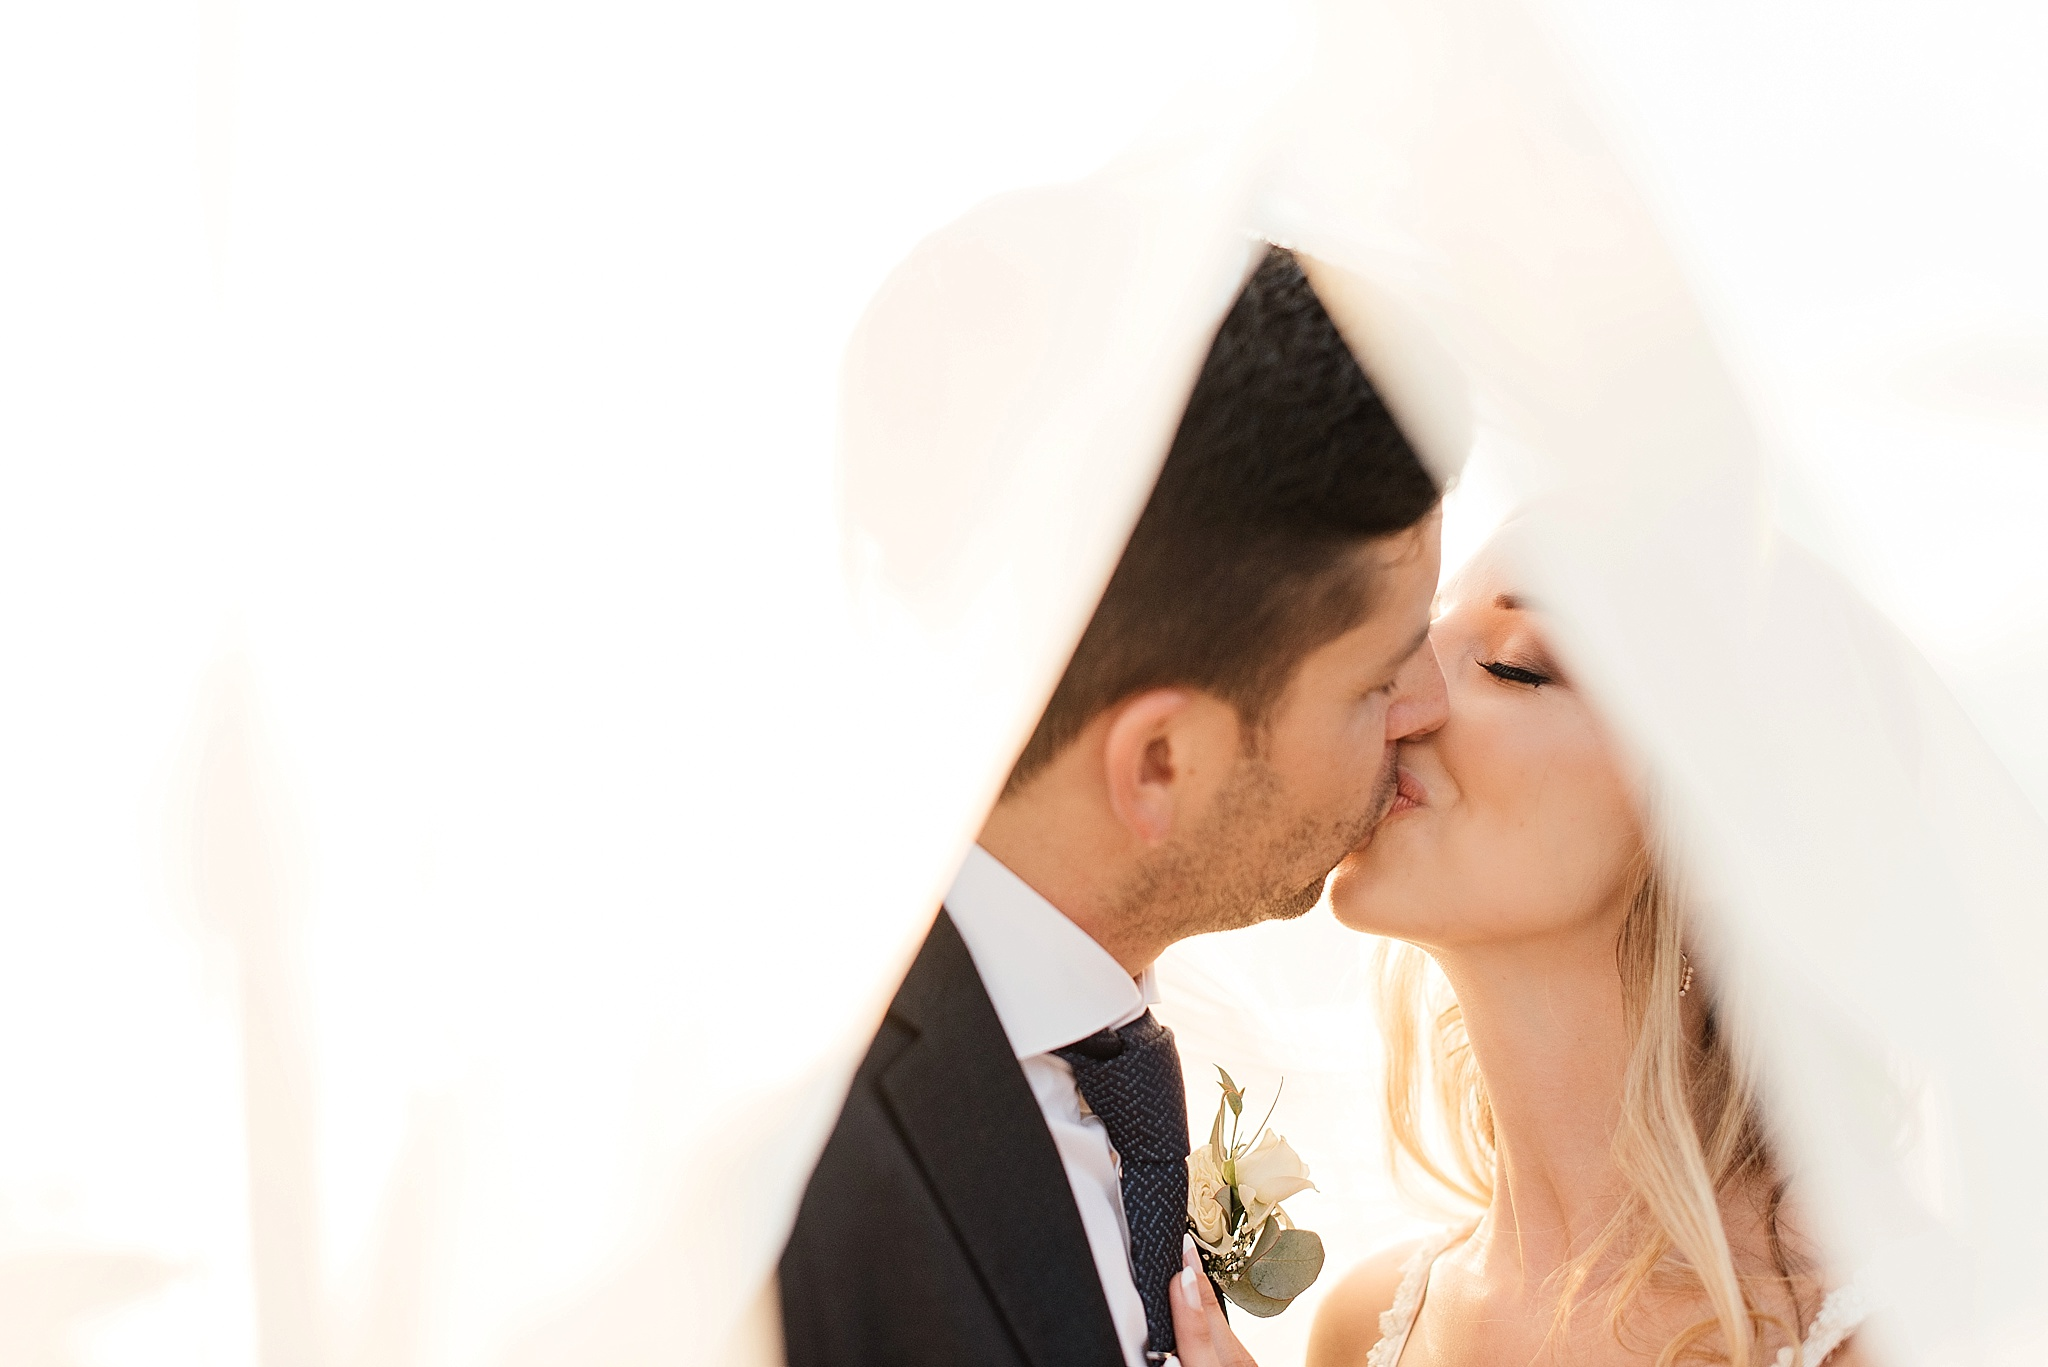 Cape Town Wedding Photographer Darren Bester - SuikerBossie - Stephen and Mikaela_0037.jpg